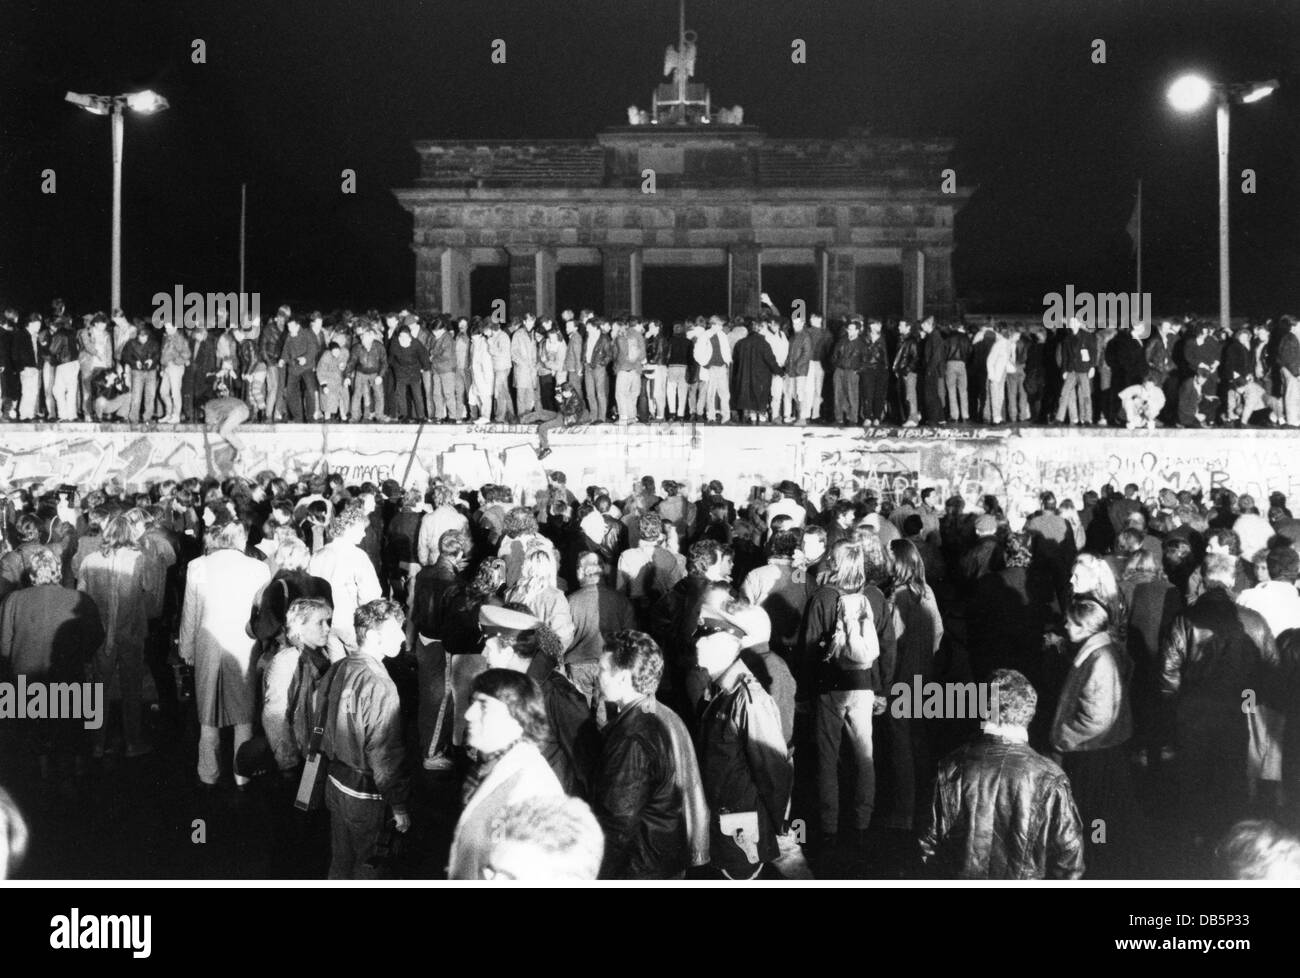 Reunification of Germany 1989 - 1990, fall of the Berlin wall, 9.11.1989, crowd on and at of the wall at Brandenburg - Stock Image